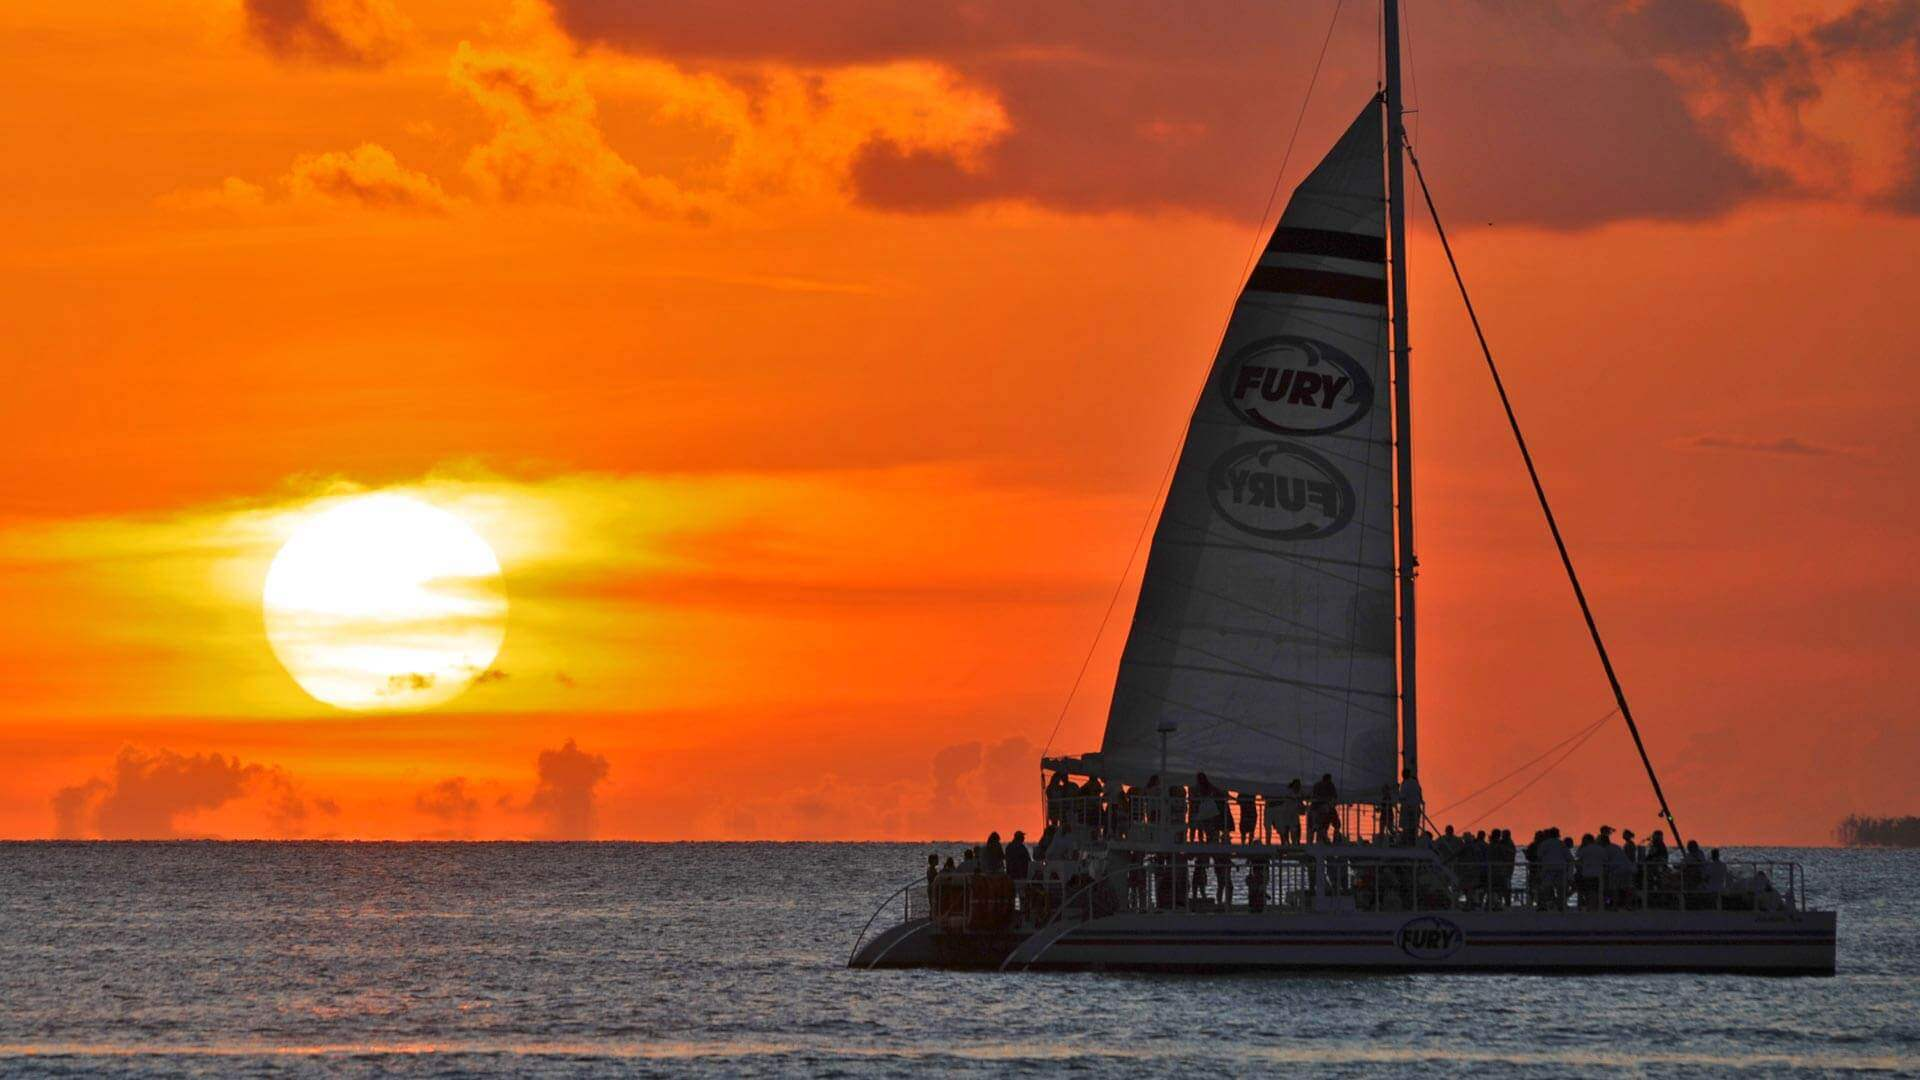 PARROTHEADS LIVE MUSIC SUNSET SAIL